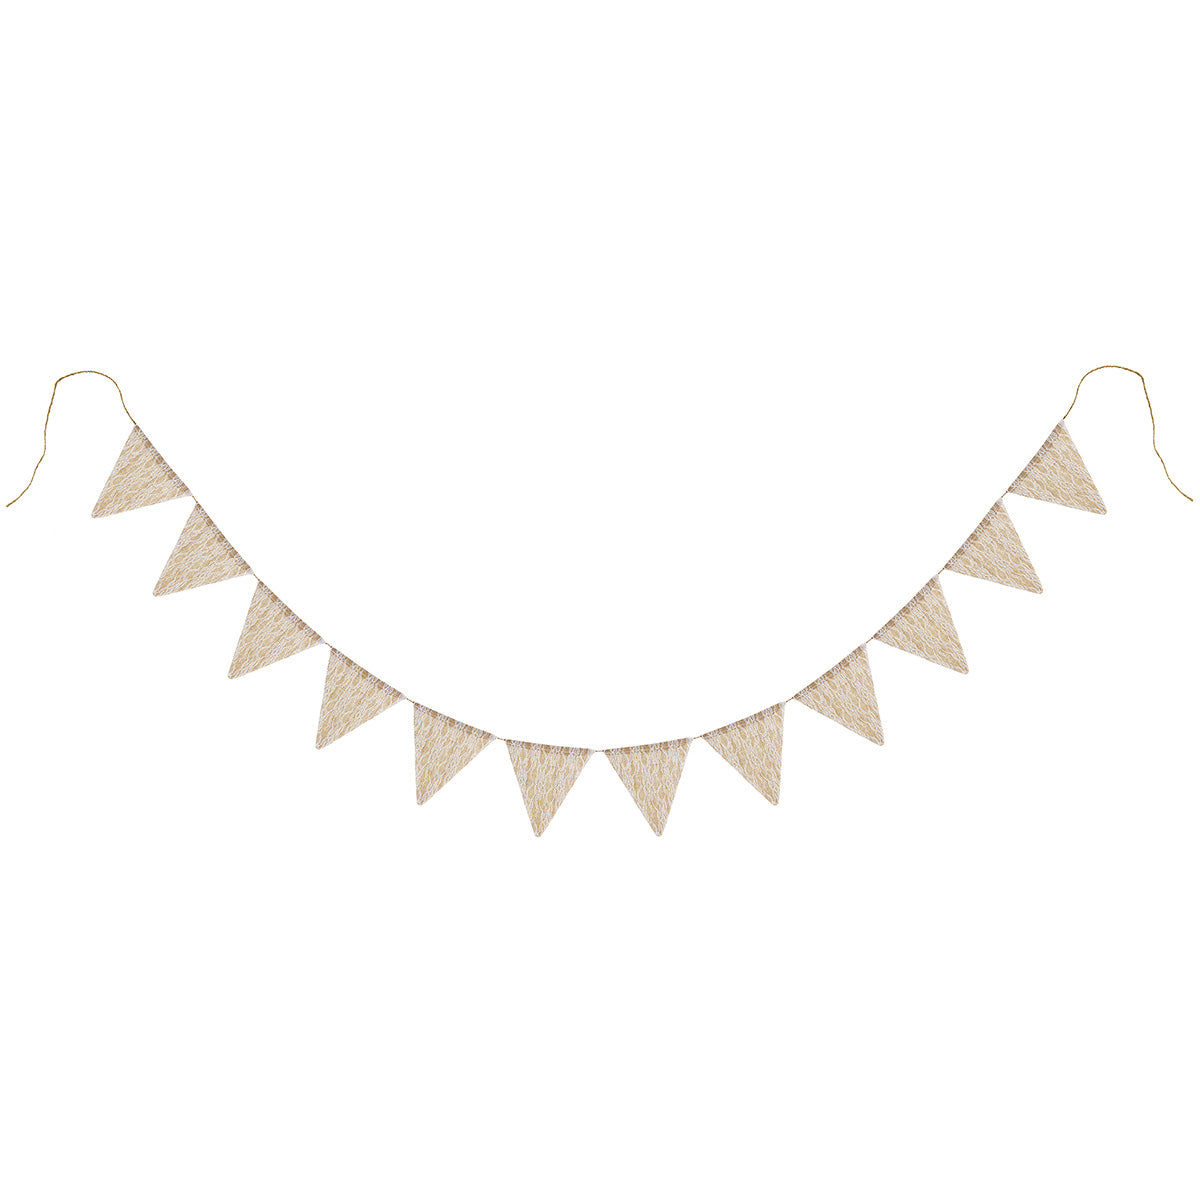 Burlap with Lace Pennant Banner